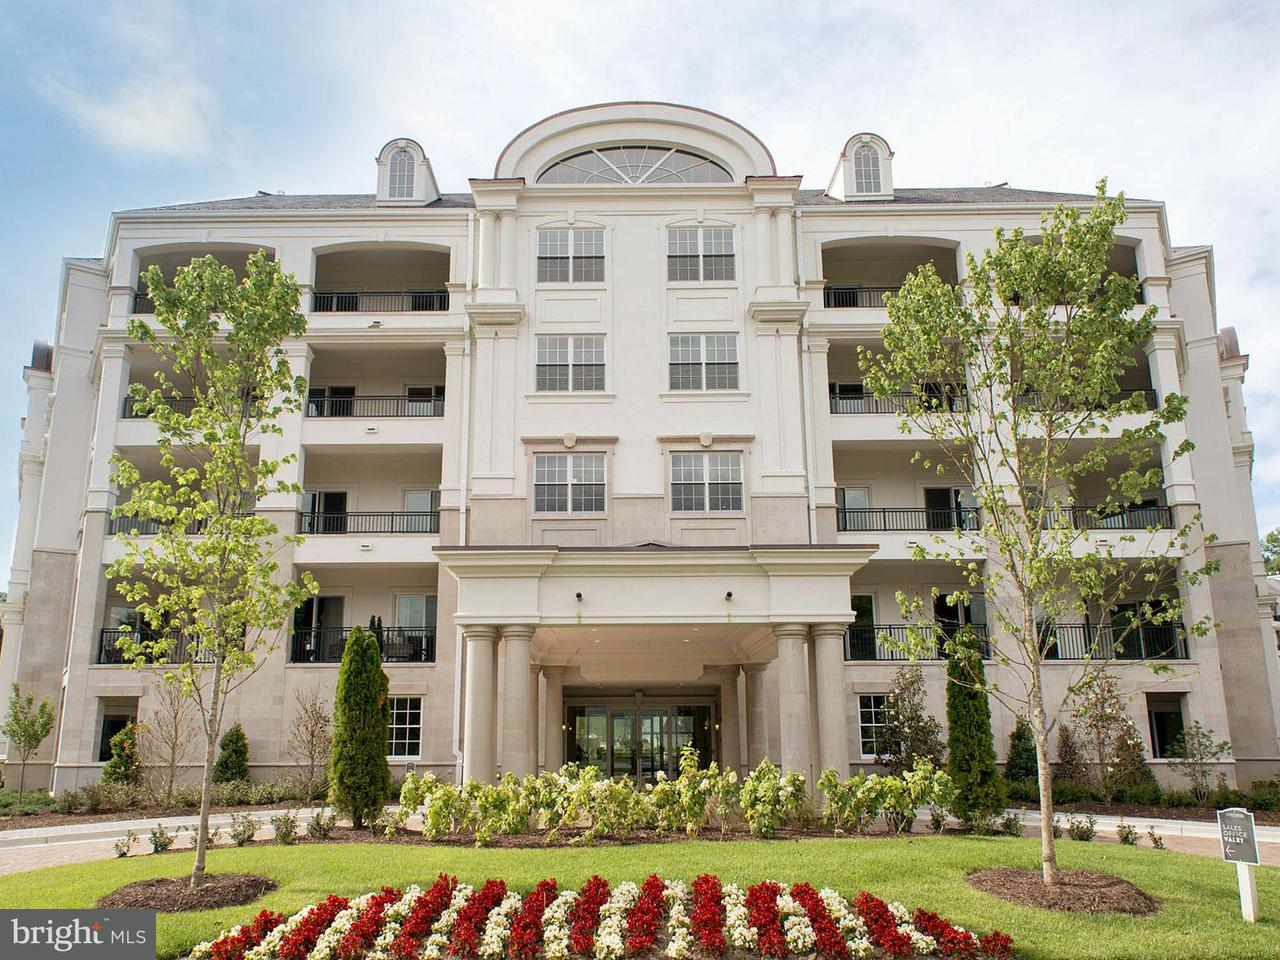 Single Family Home for Sale at 8111 RIVER RD #444 8111 RIVER RD #444 Bethesda, Maryland 20817 United States